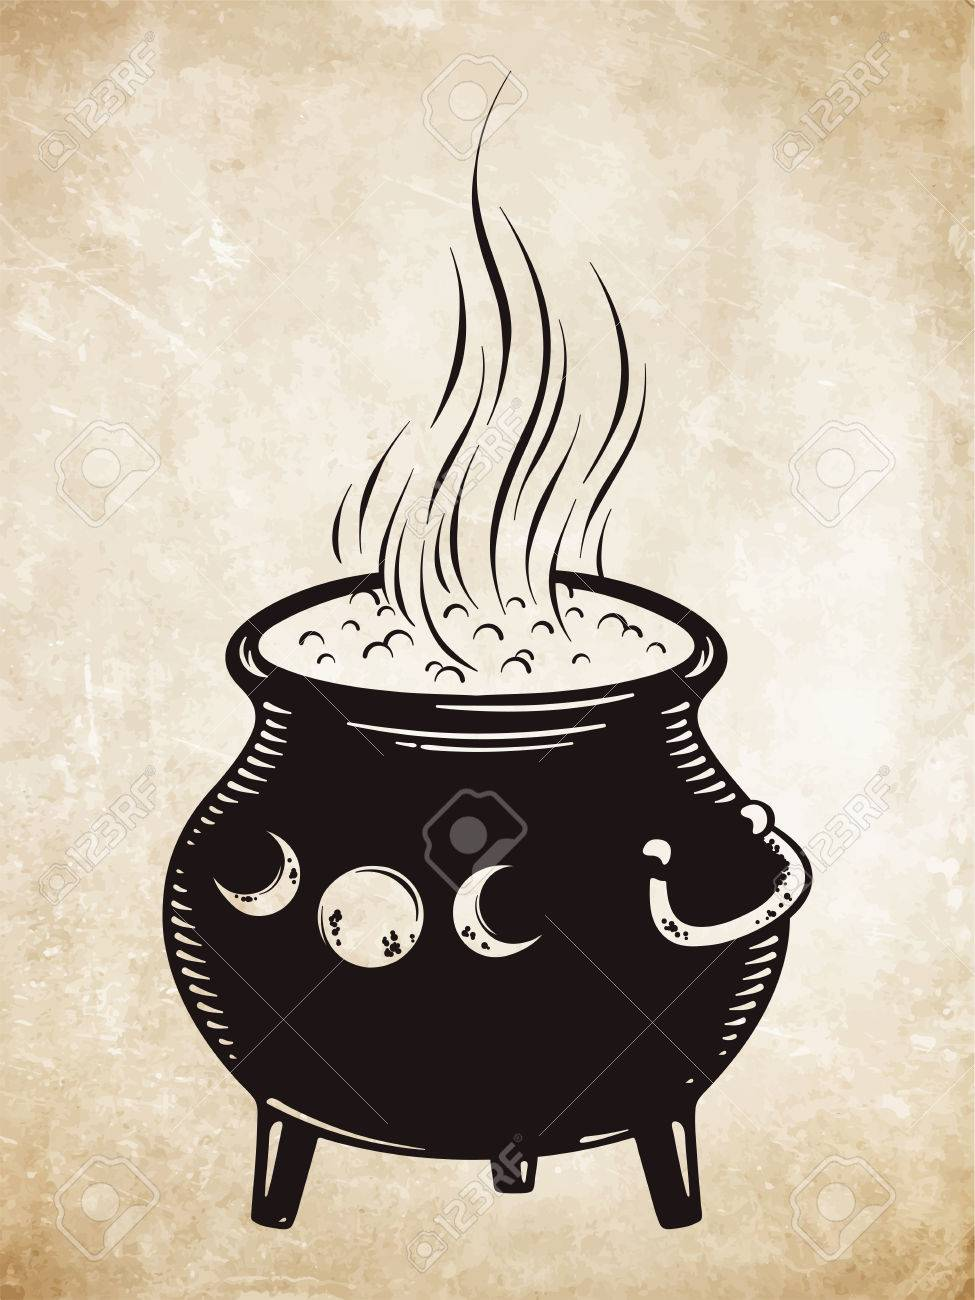 975x1300 Boiling Magic Cauldron Vector Illustration. Hand Drawn Wiccan